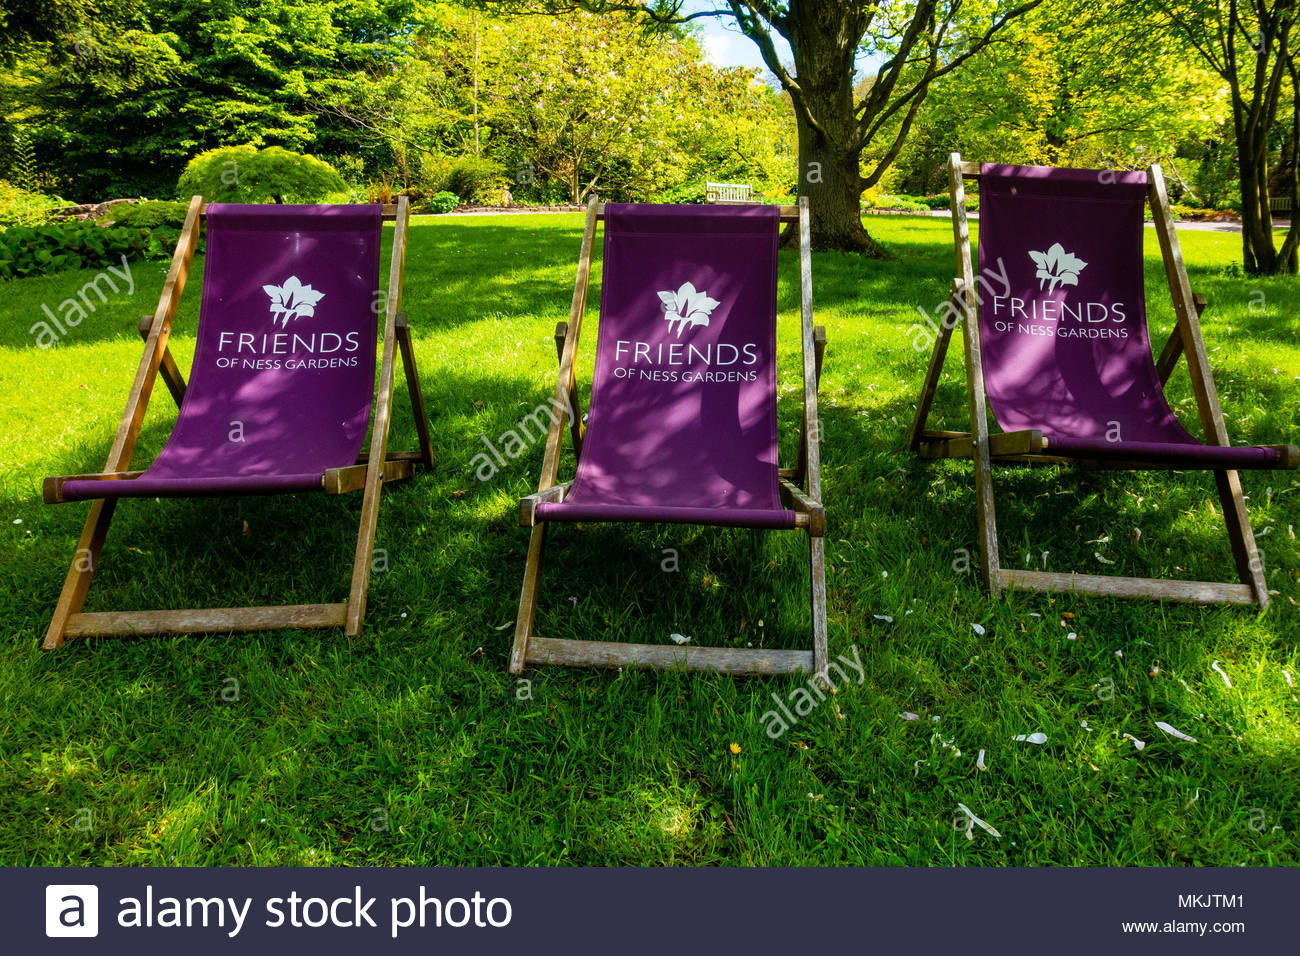 Friends of Ness Gardens deck chairs or sun loungers at The University of Liverpool's Ness Botanical  Gardens Ness Gardens, Ness, Wirral, Merseyside England UK Credit: Christopher Canty Photography/Alamy Live News Stock Photo